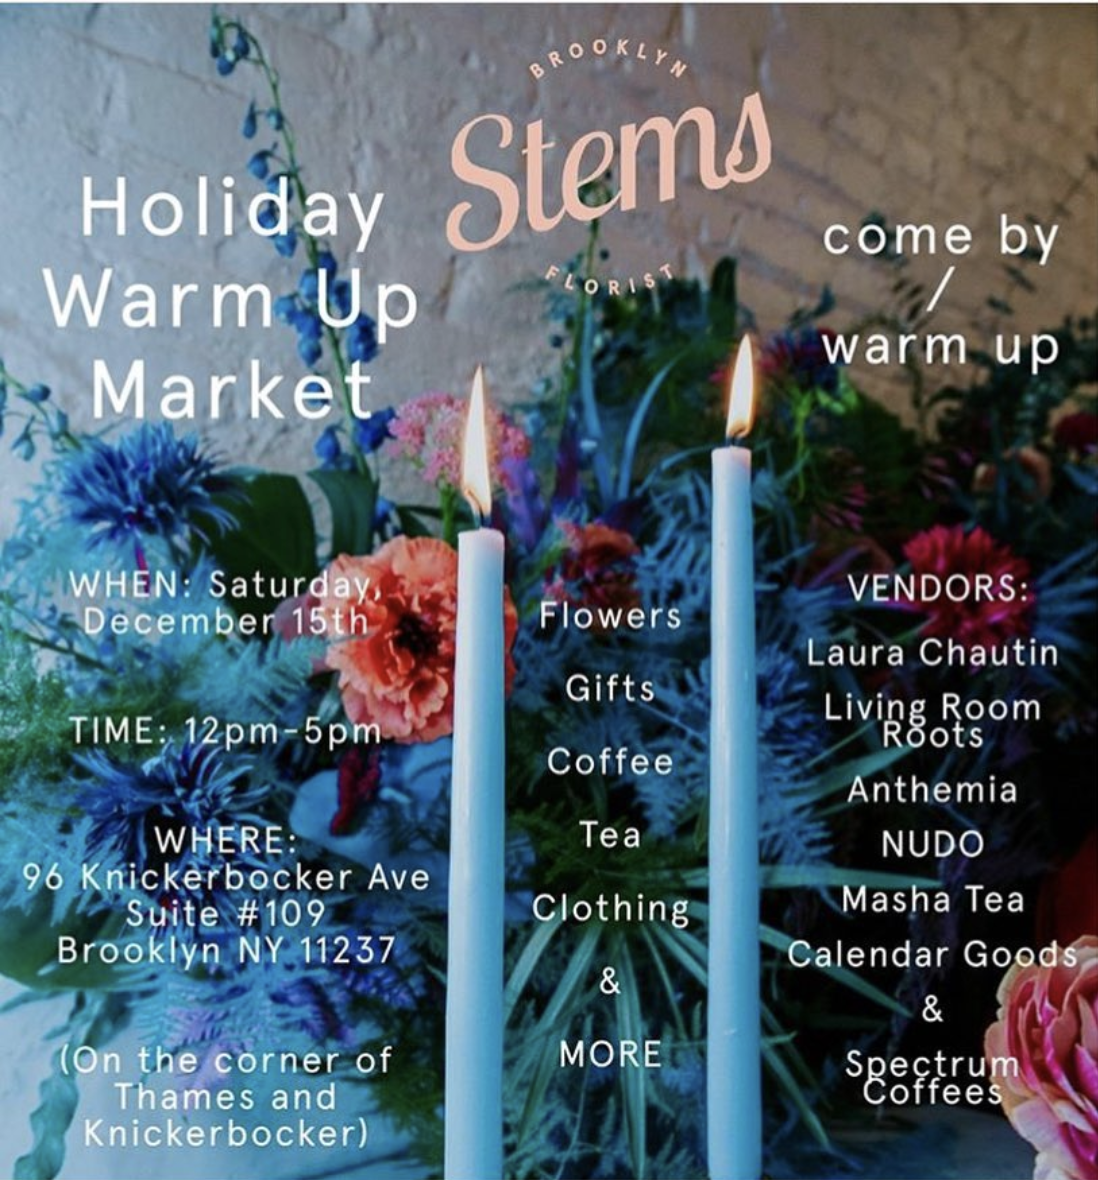 Holiday Warm Up at Stems, Brooklyn